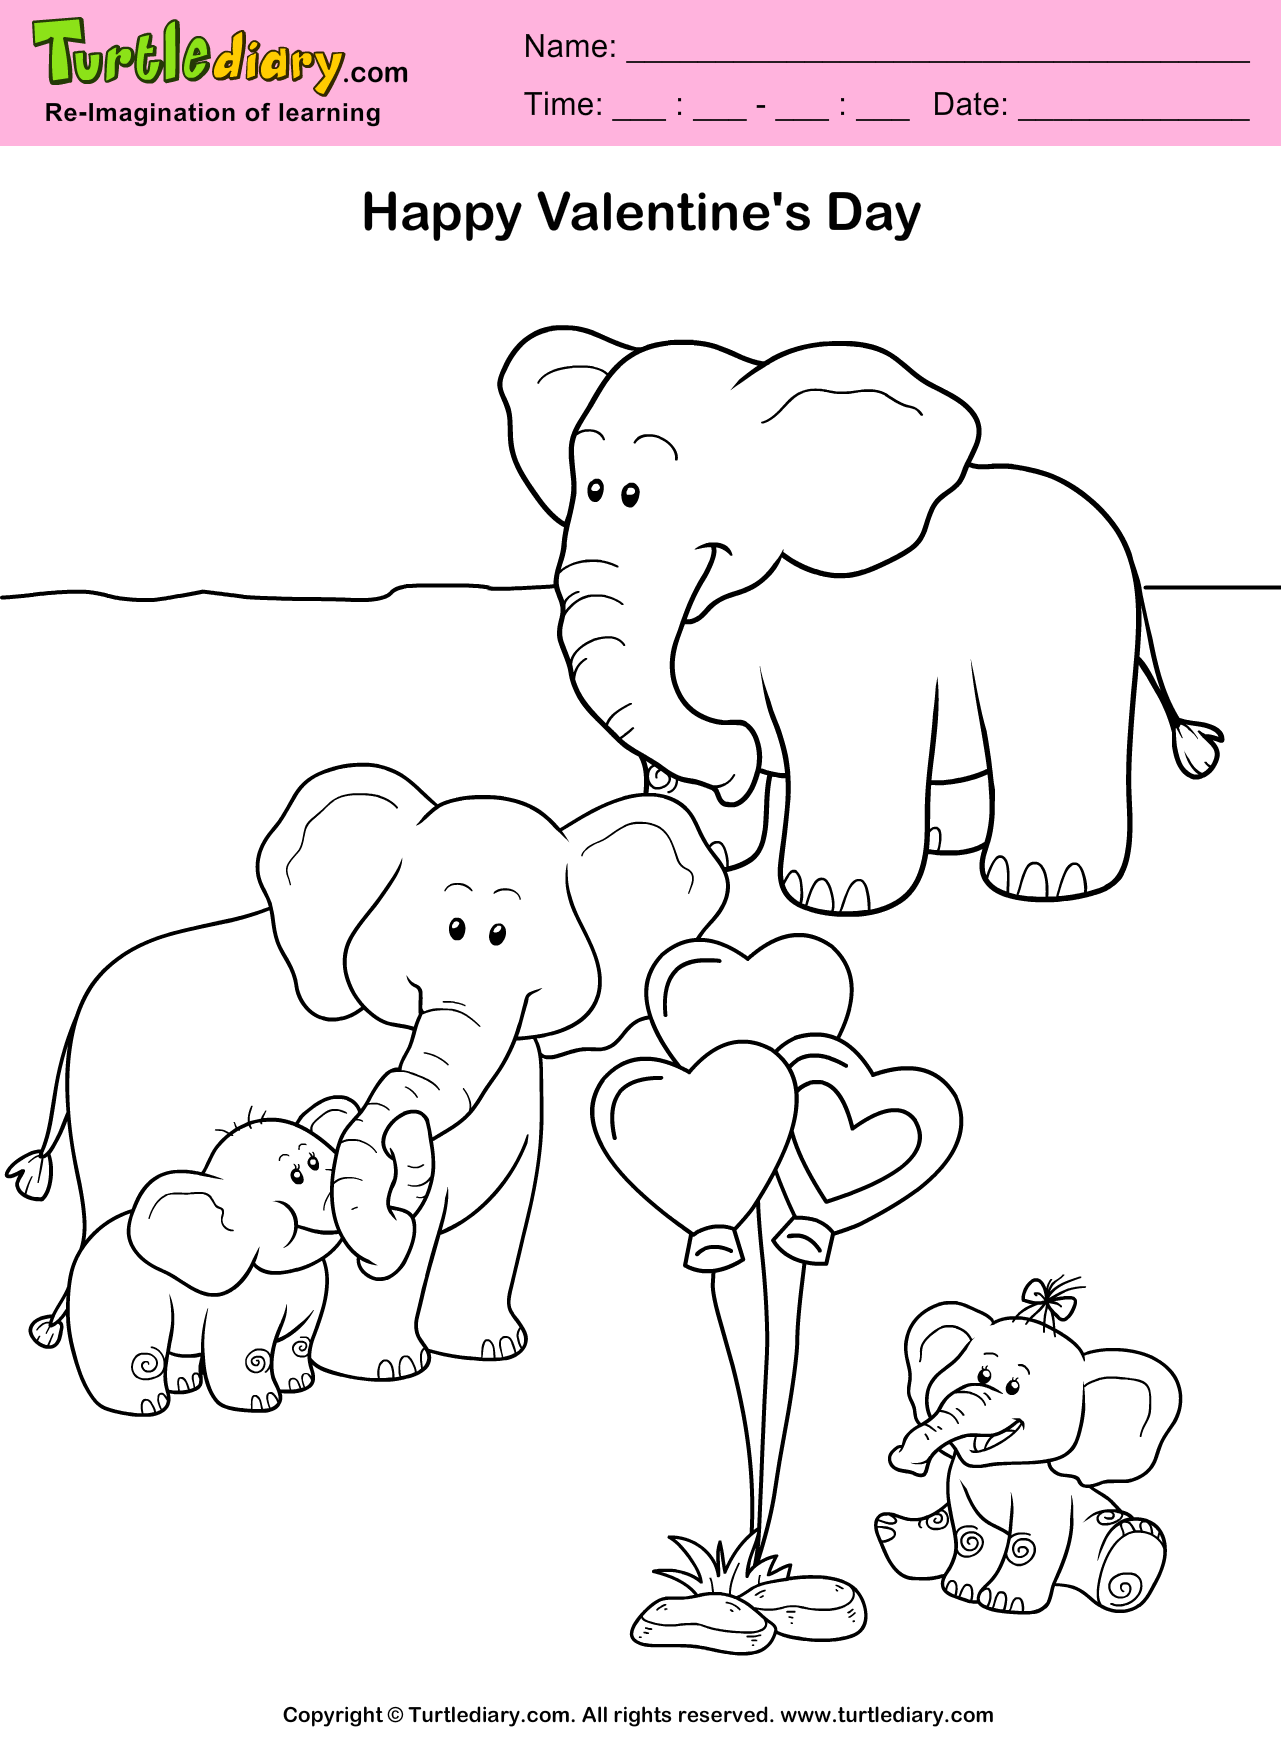 valentine's day elephant coloring page. #childeducation #